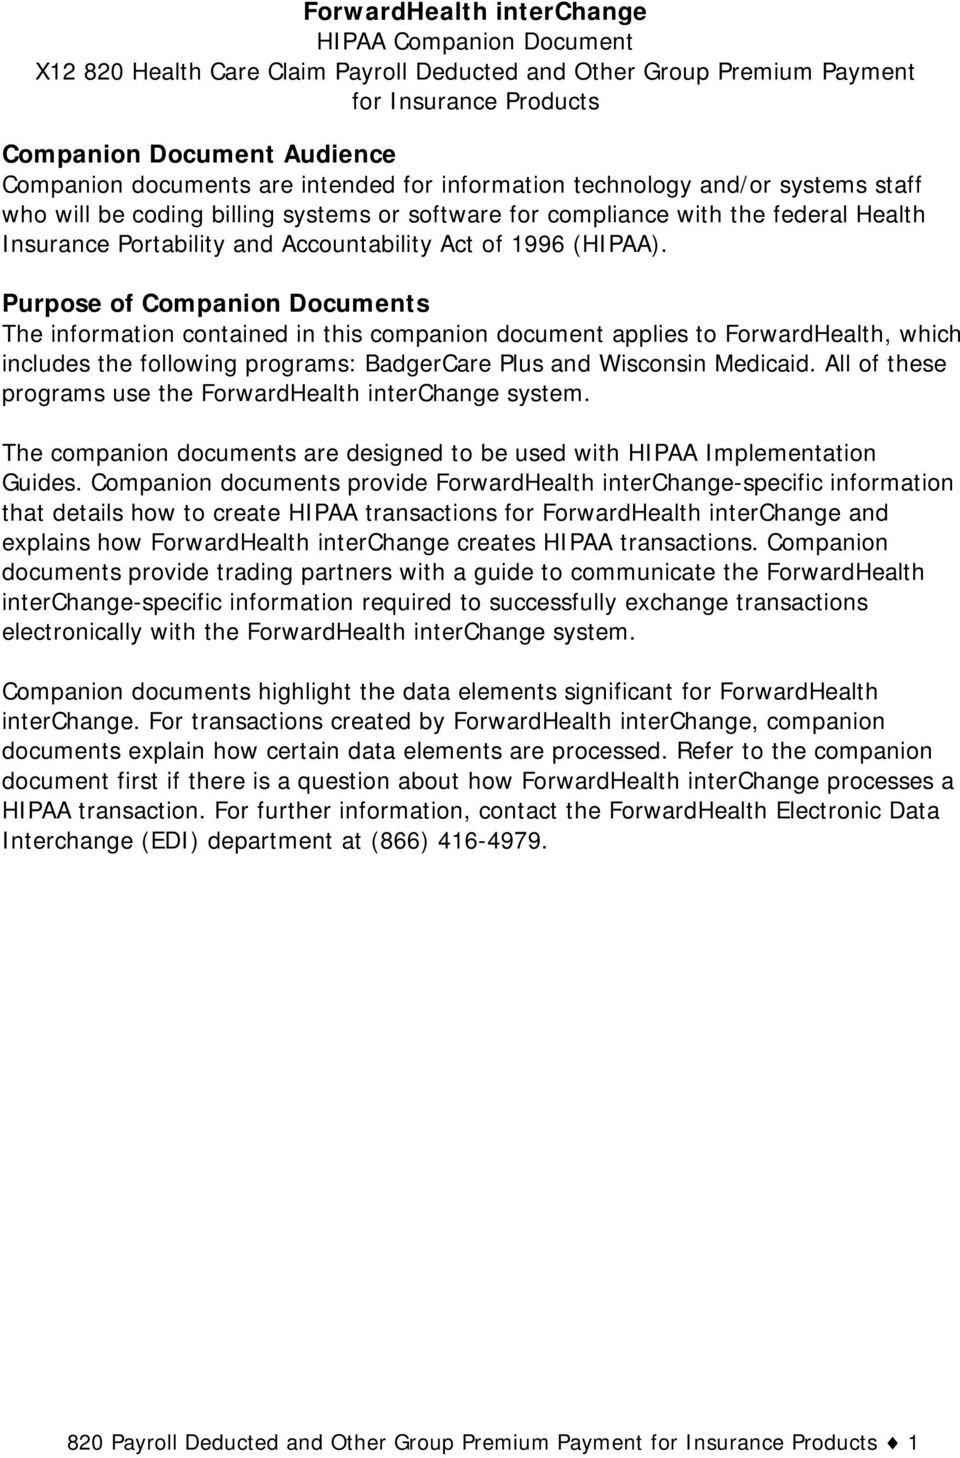 Purpose of Companion Documents The information contained in this companion document applies to ForwardHealth, which includes the following programs: BadgerCare Plus and Wisconsin Medicaid.